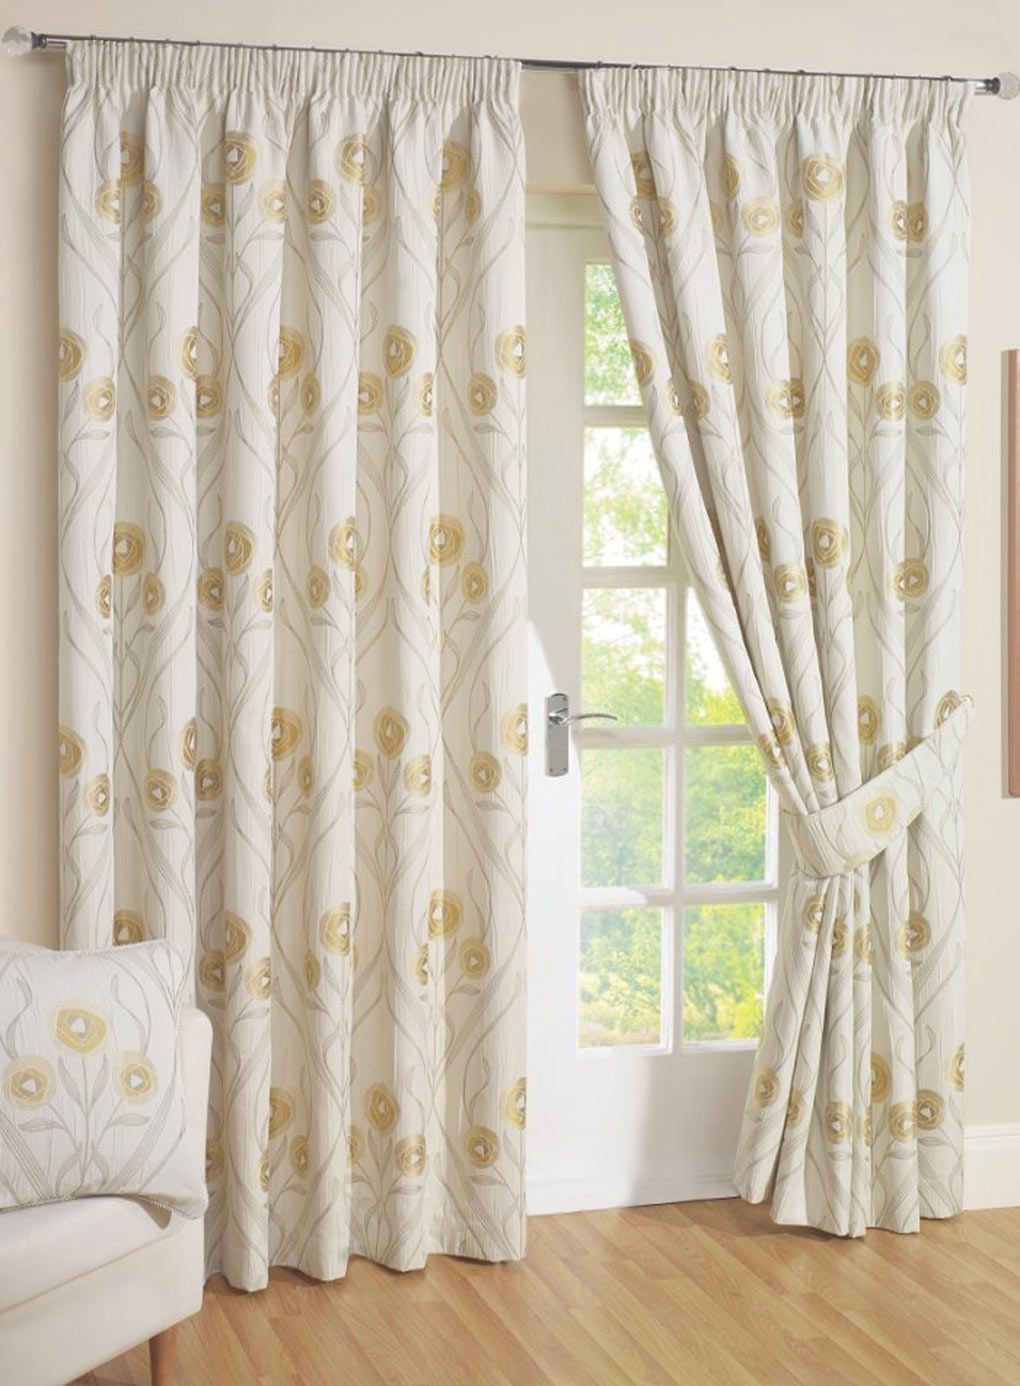 Natural Stylized Flower Pencil Pleat Curtain Patterned Curtains